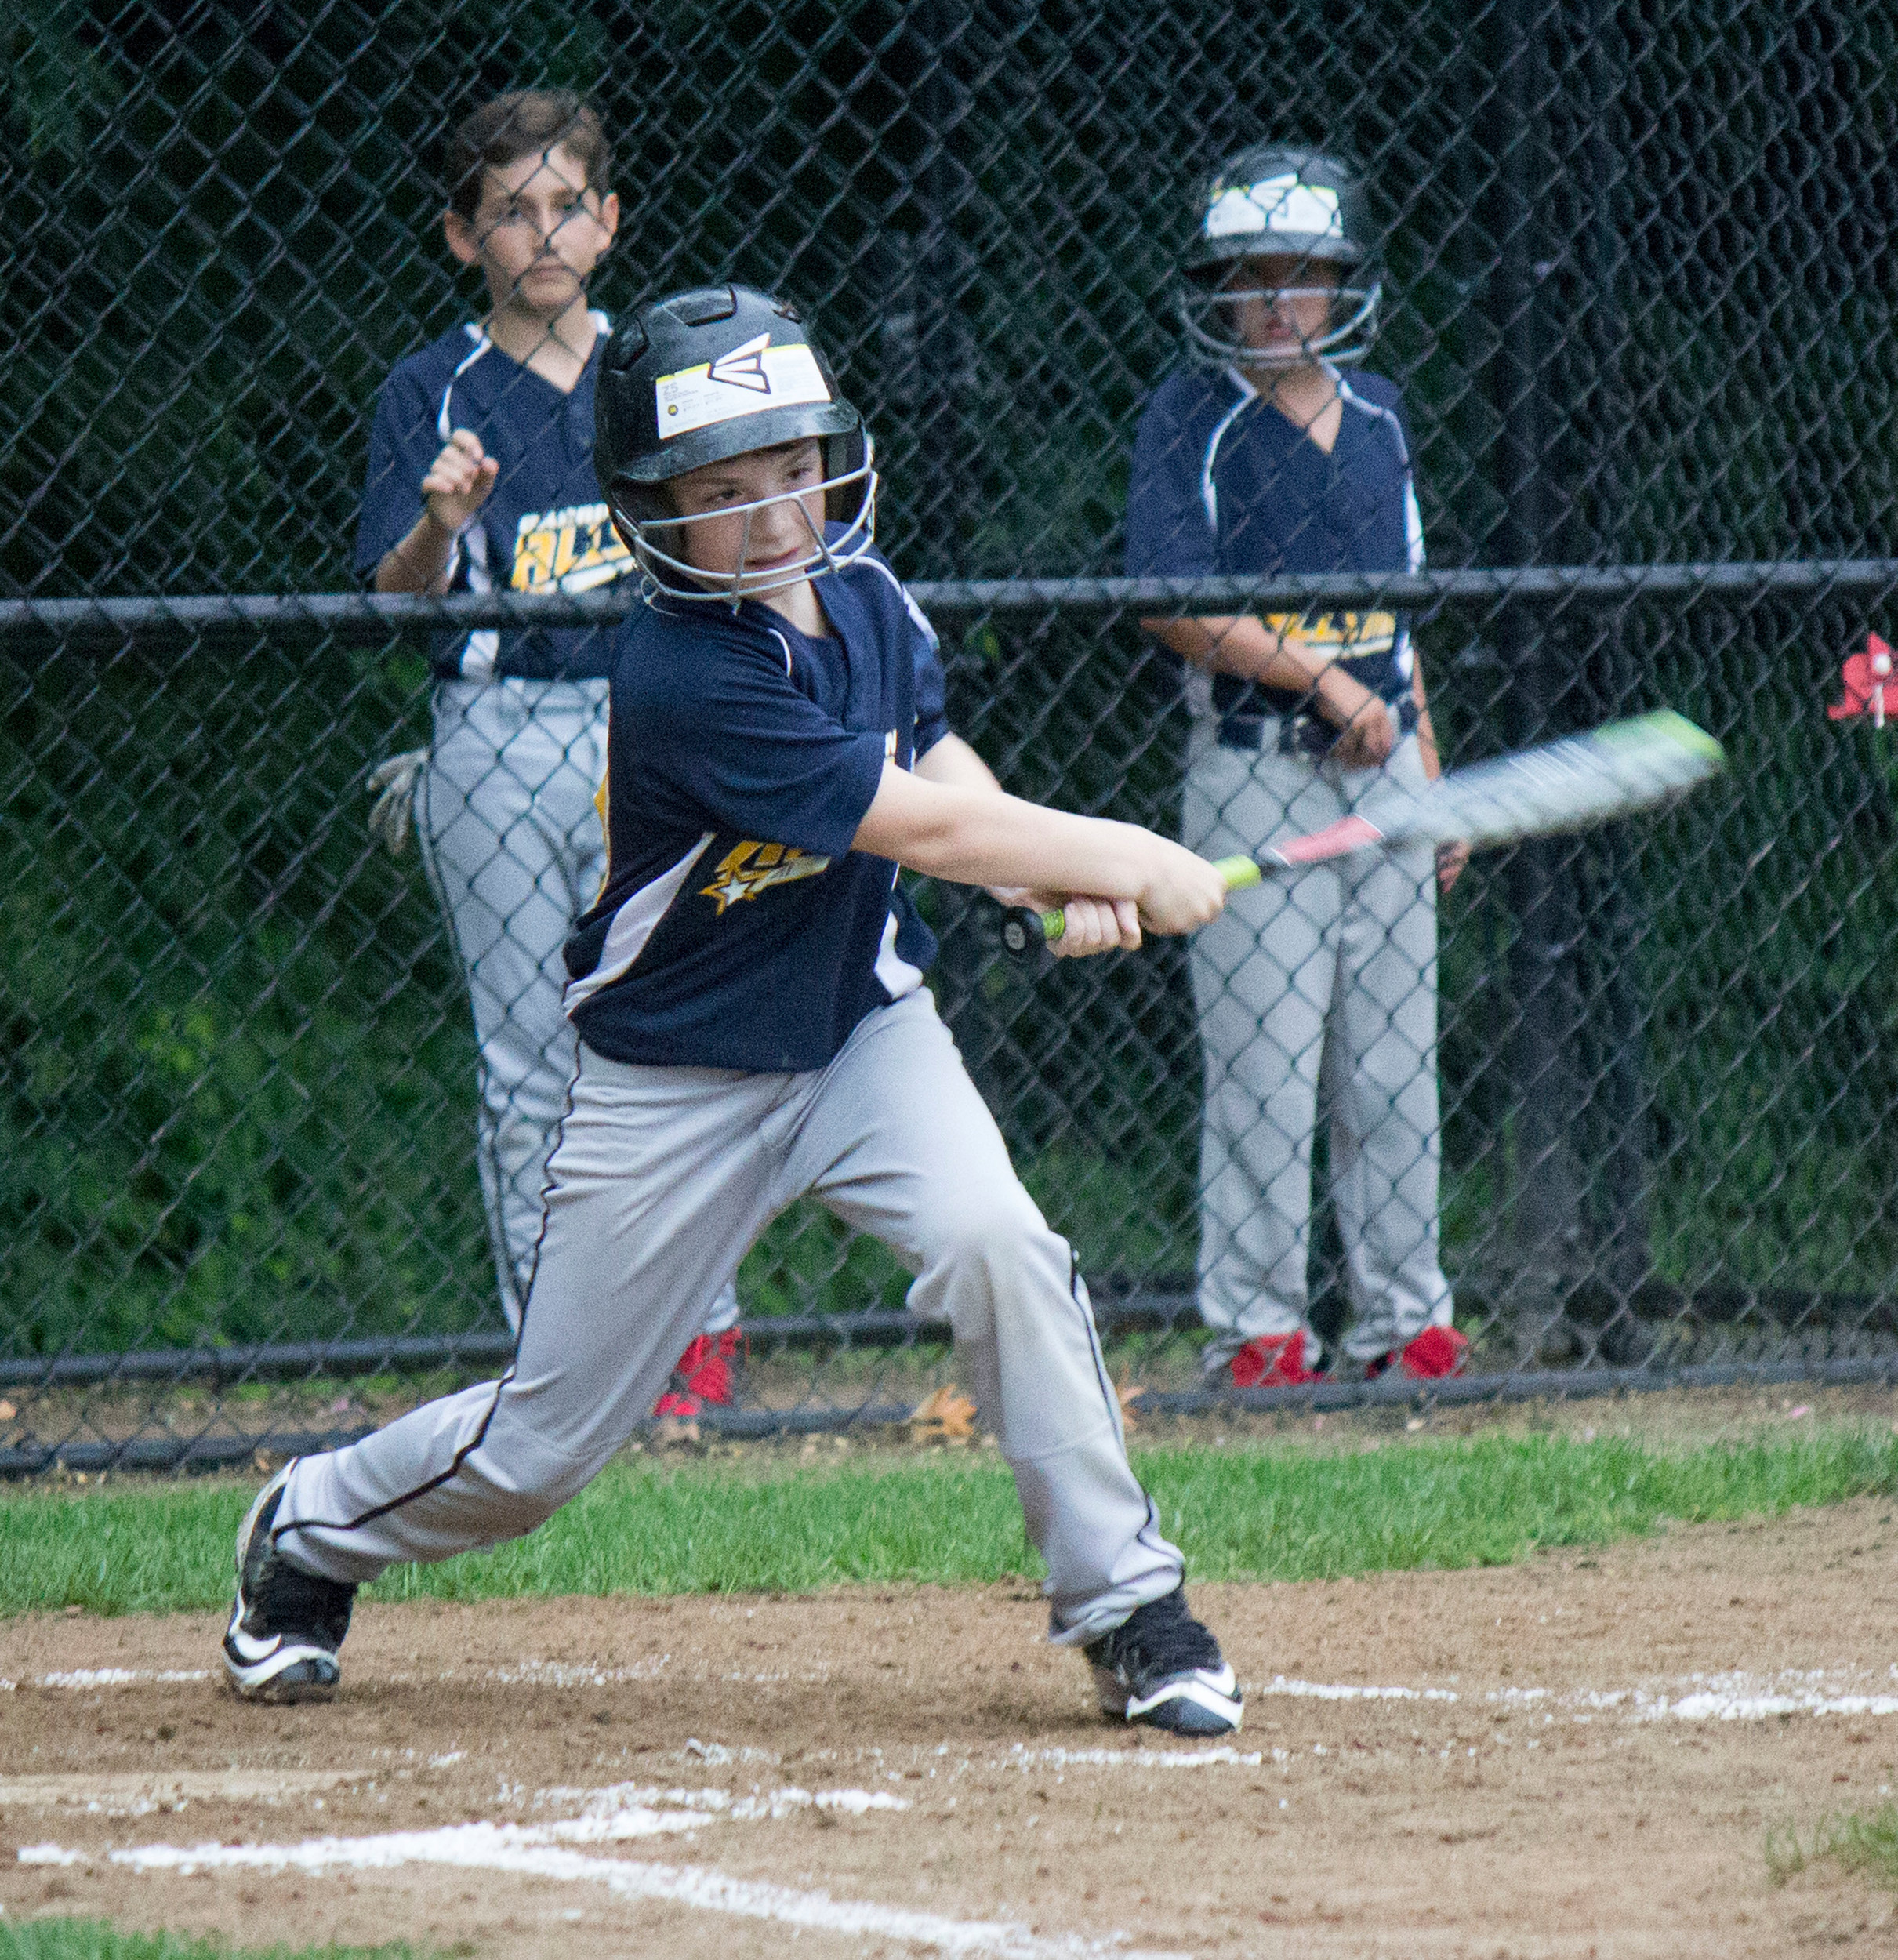 Barrington's Lucas Tanous hits the ball during a 9-10 Minors All Star game against Warren on Wednesday.